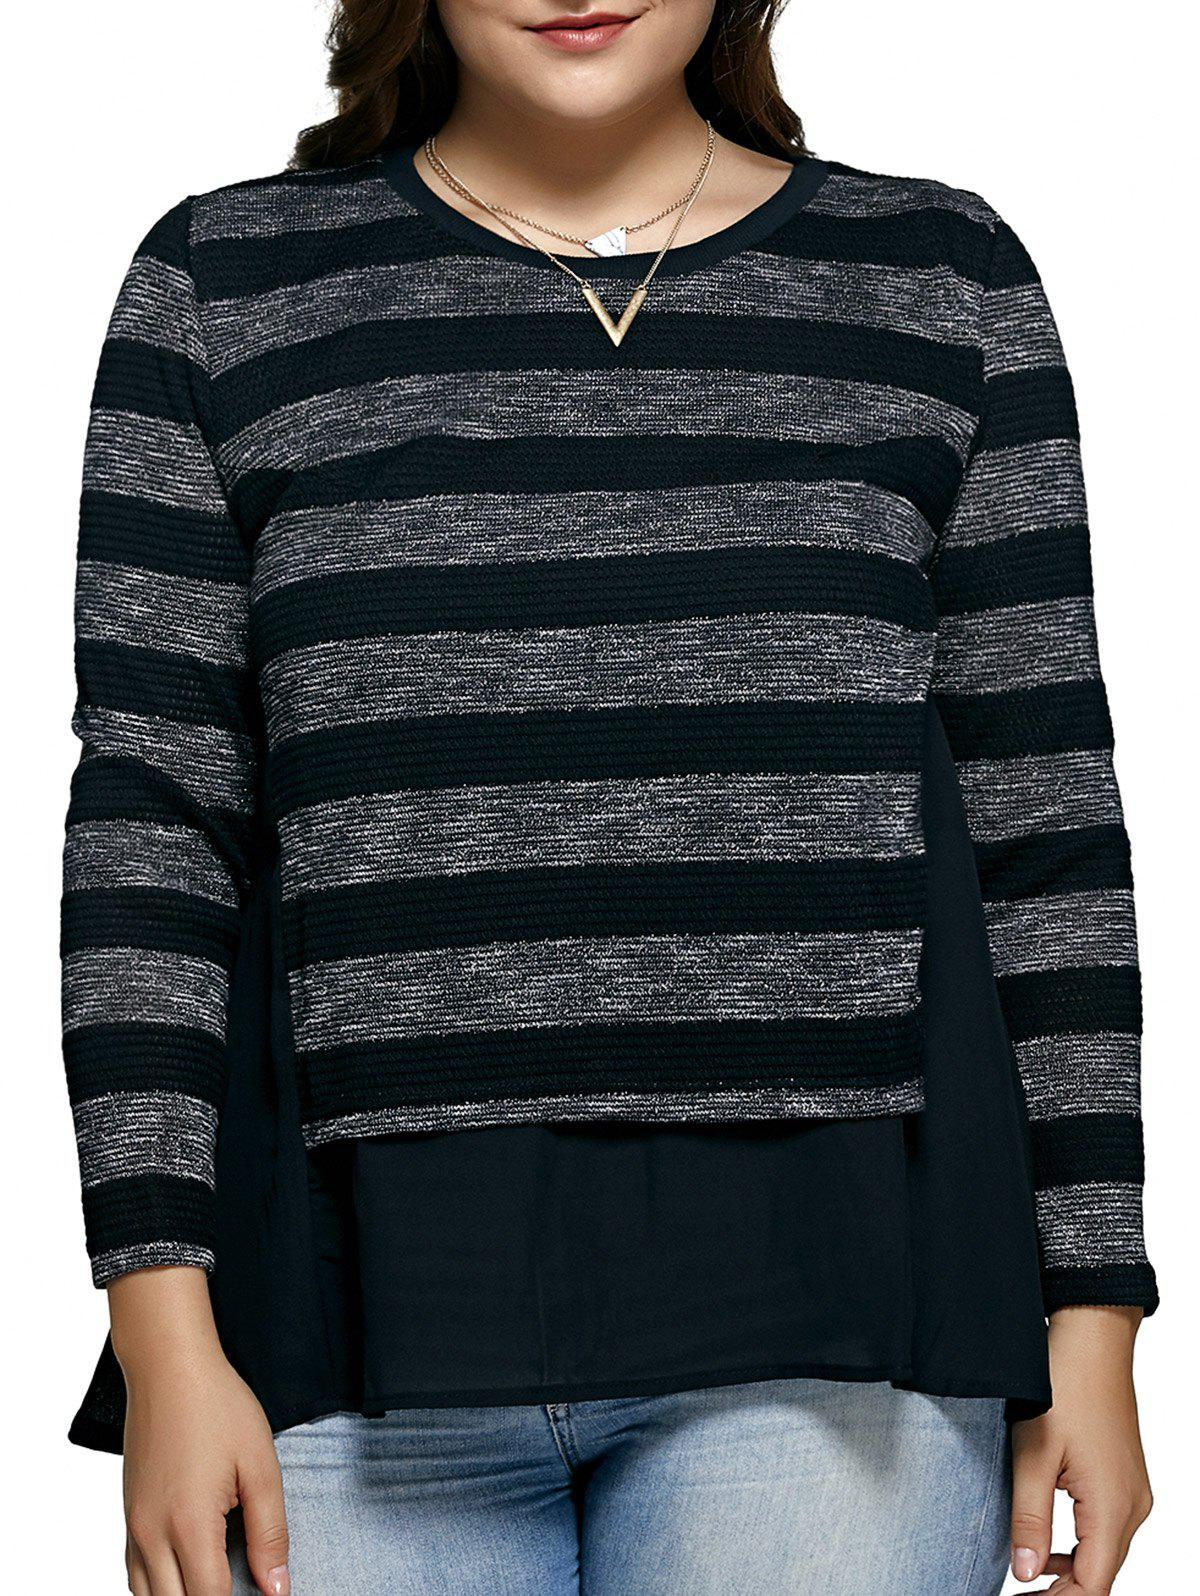 Women's Striped Oversized Blouse - BLACK 5XL